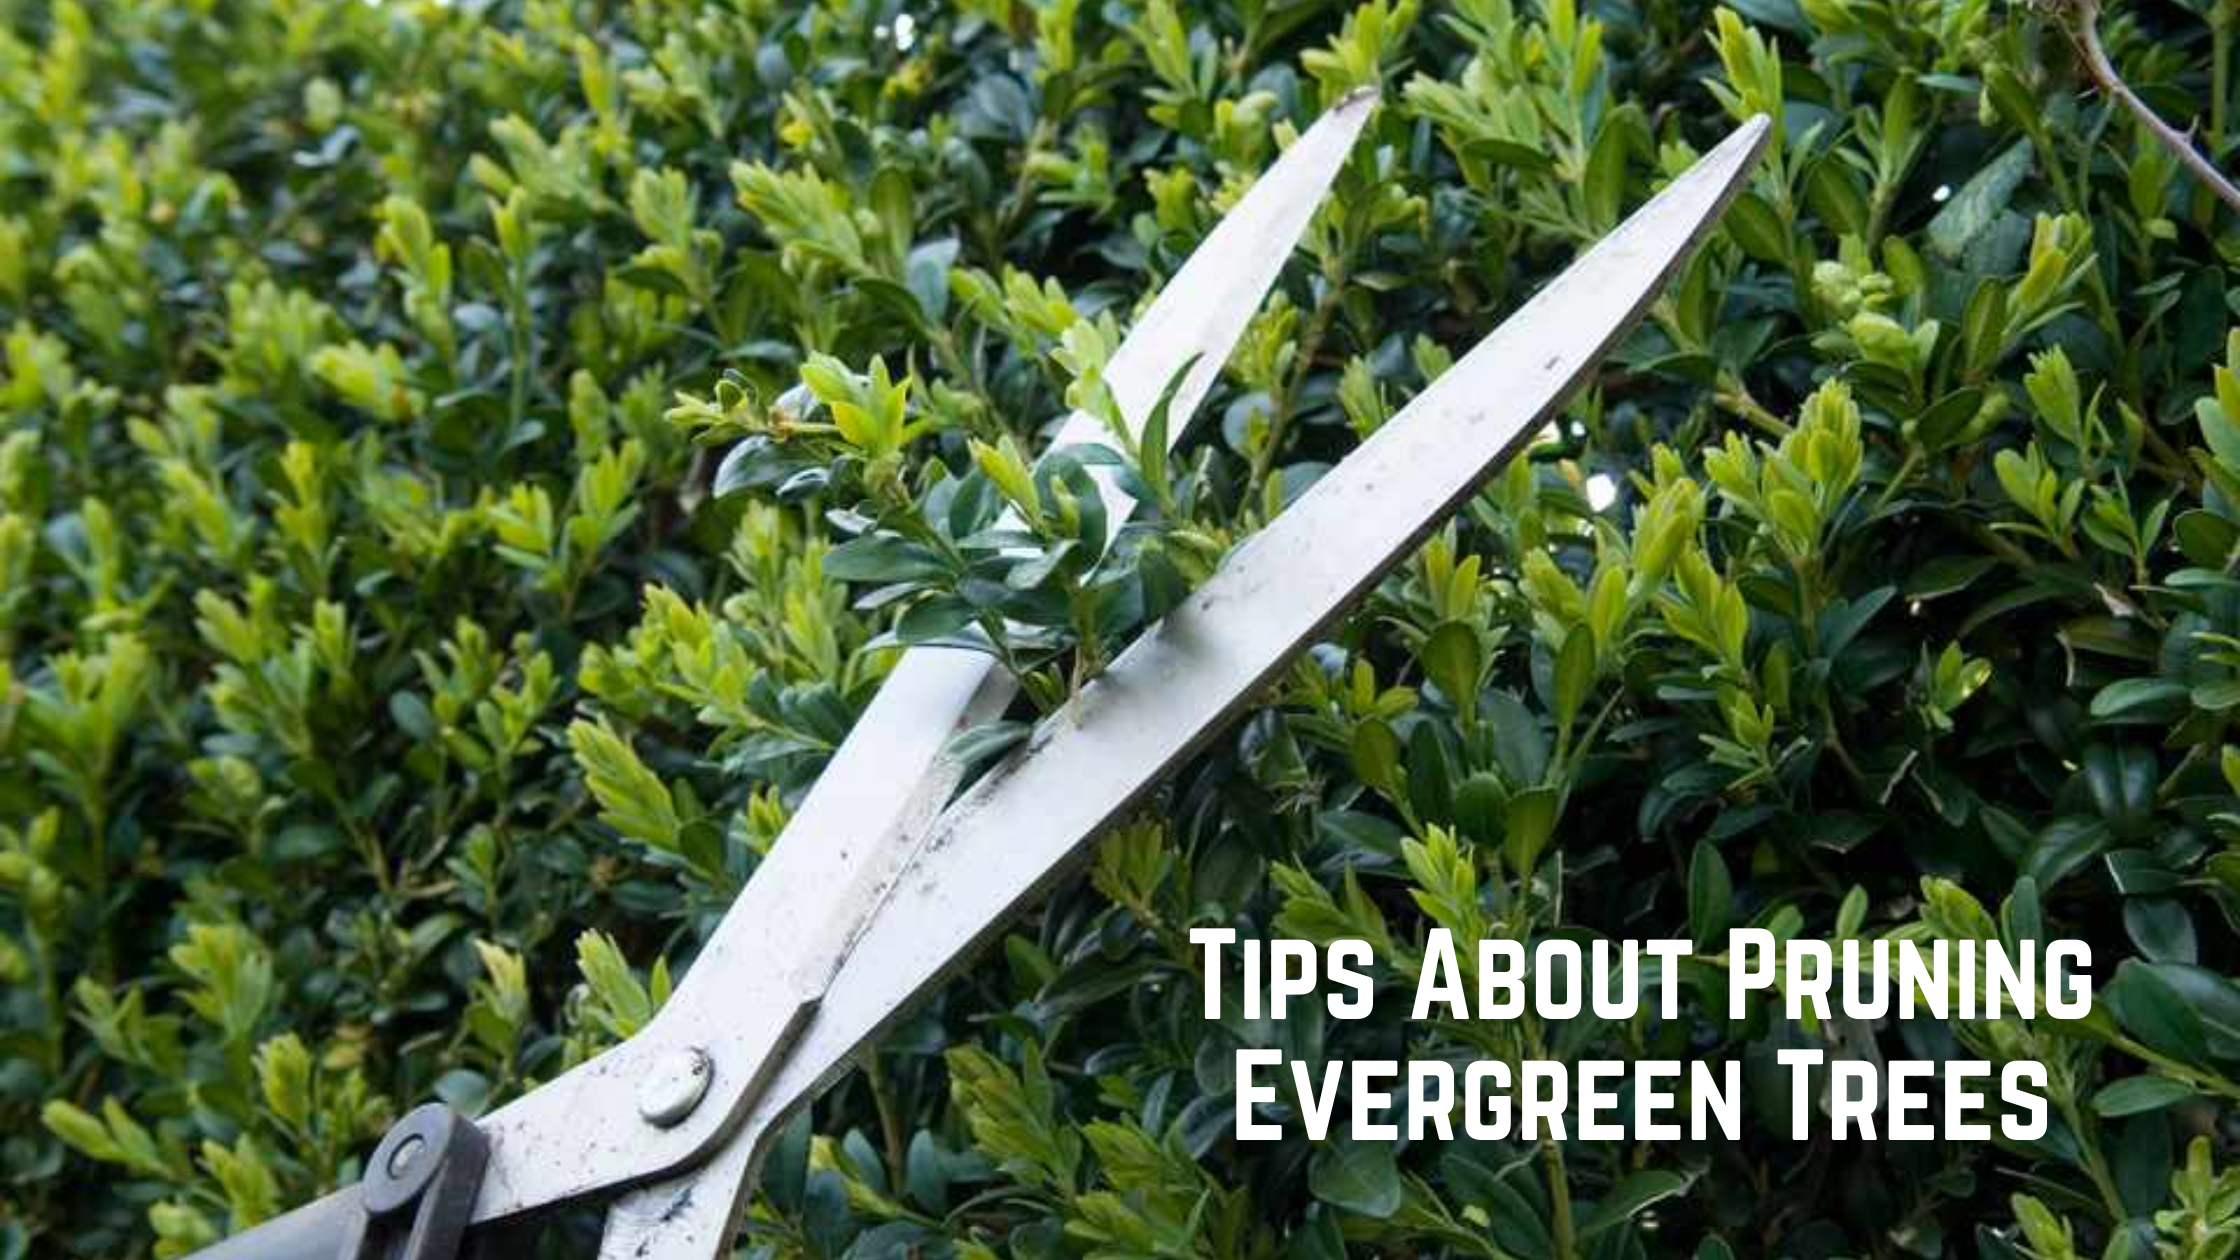 Some Tips and Tricks About Pruning Evergreen Trees